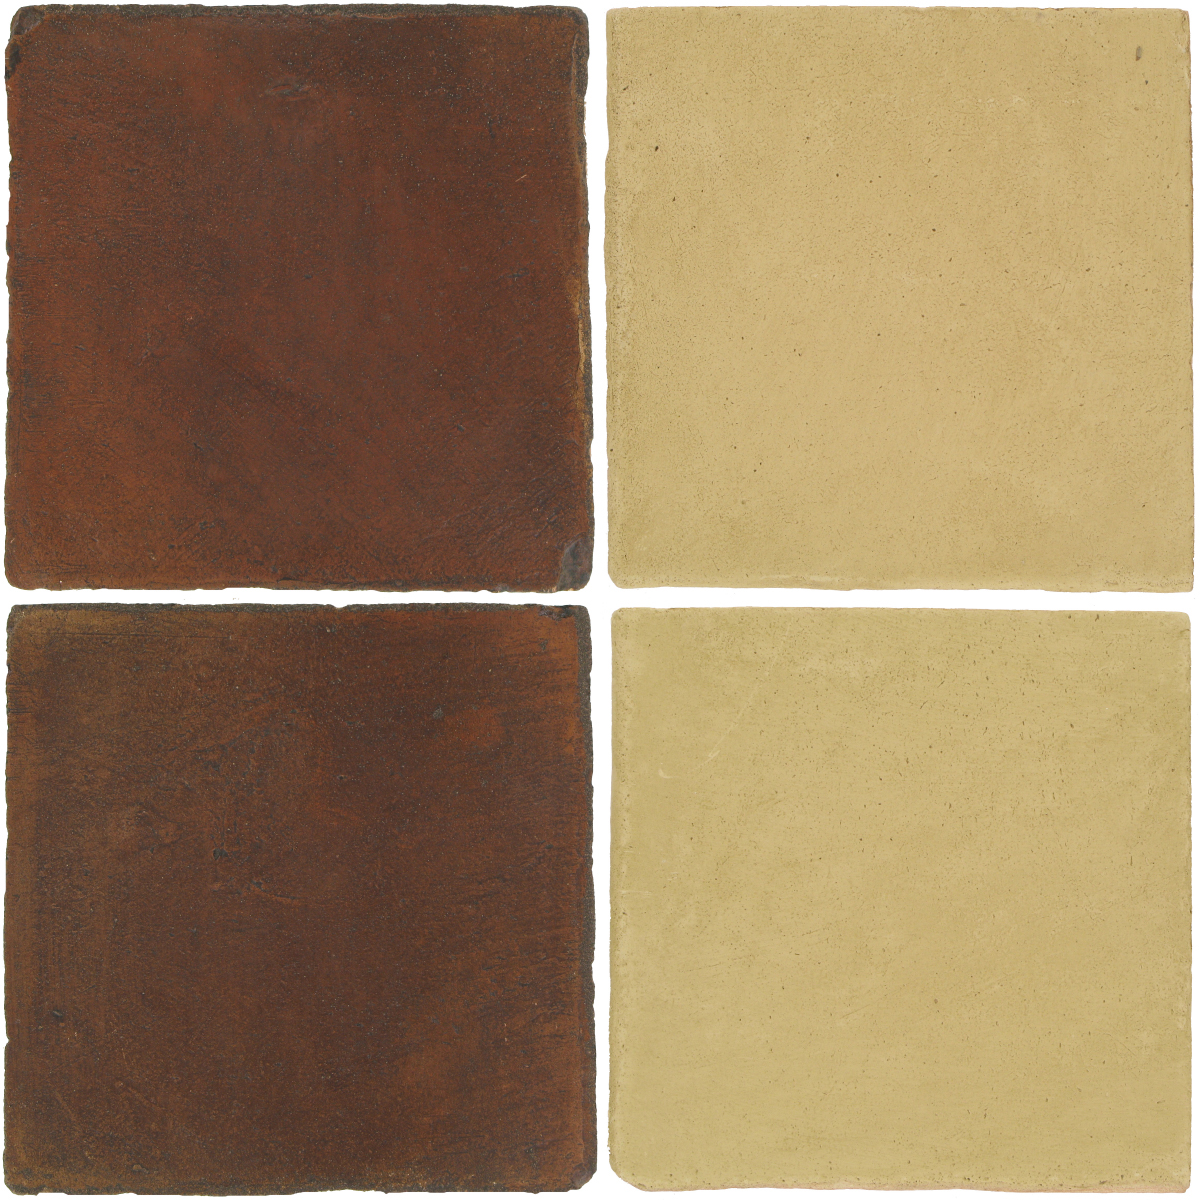 Pedralbes Antique Terracotta  2 Color Combinations  OHS-PSOW Old World + OHS-PGGW Golden W.